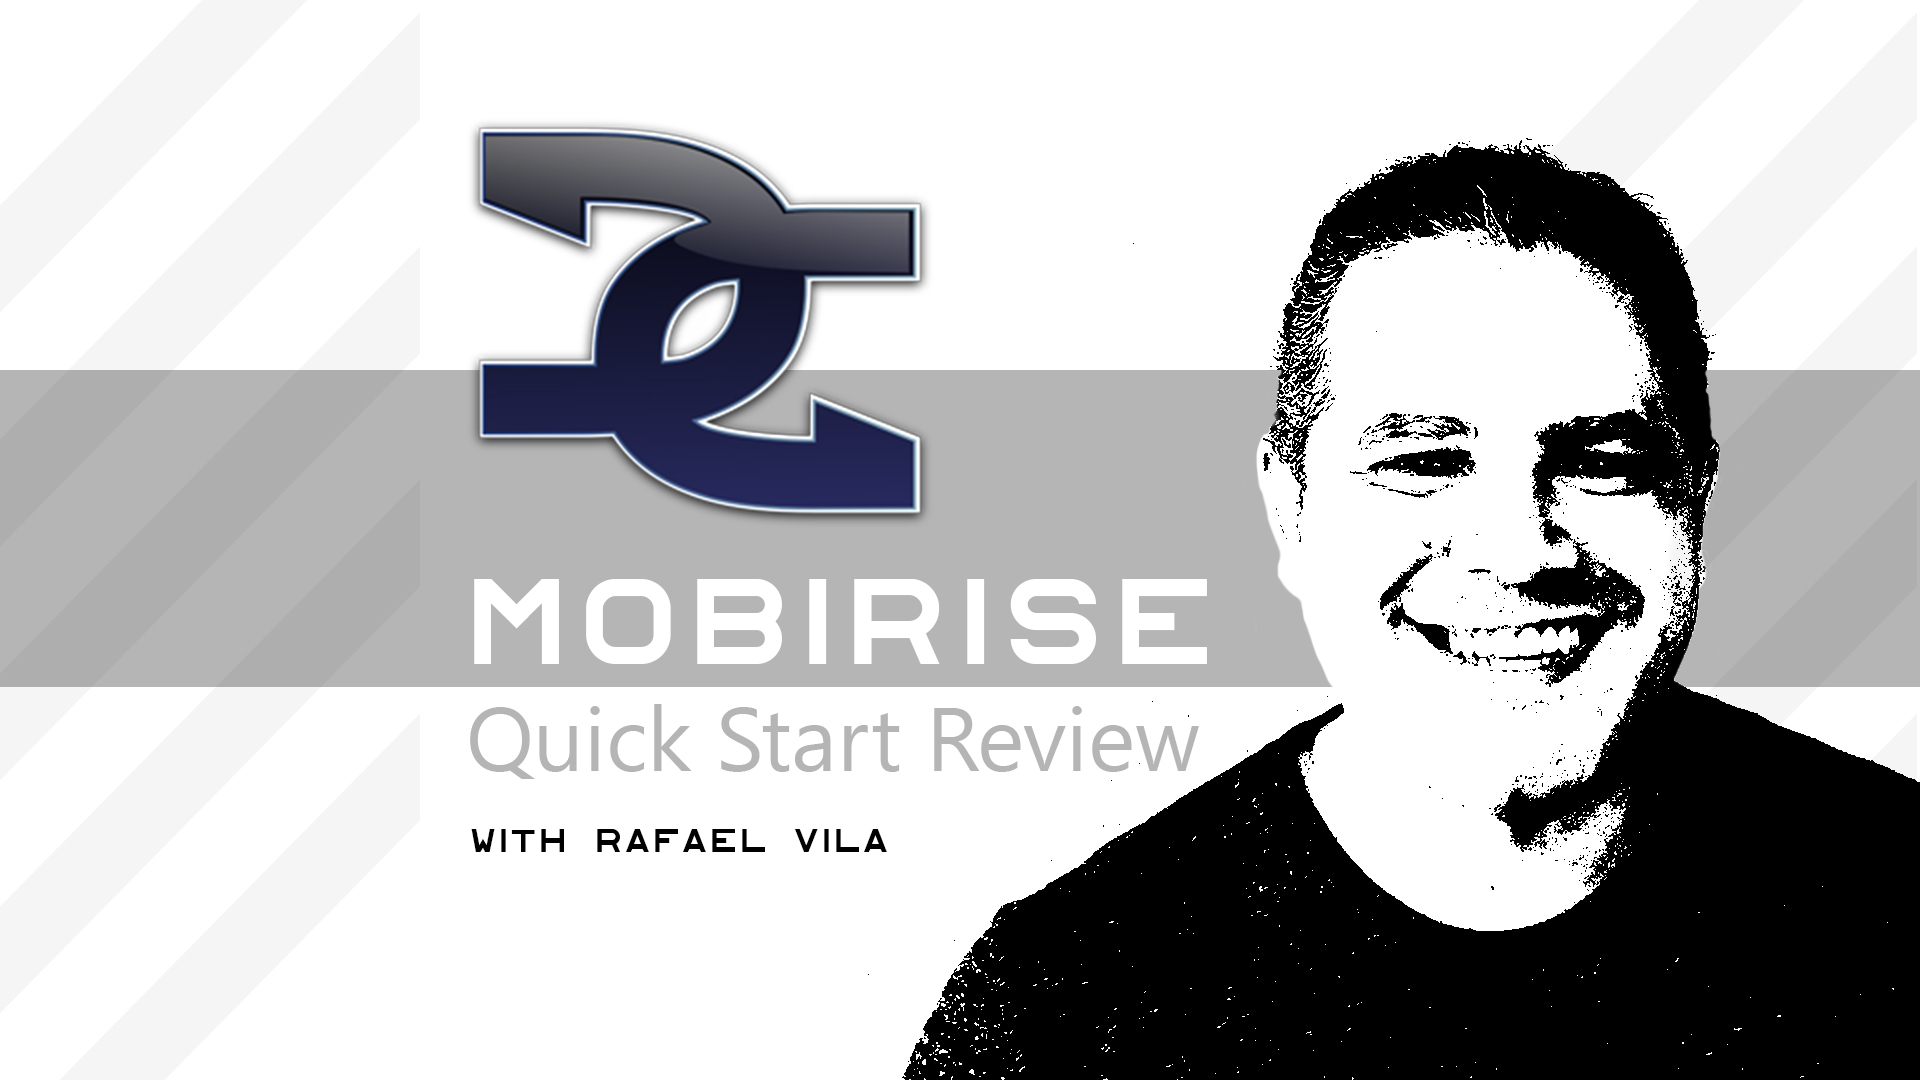 Mobirise | A Quick Start Review